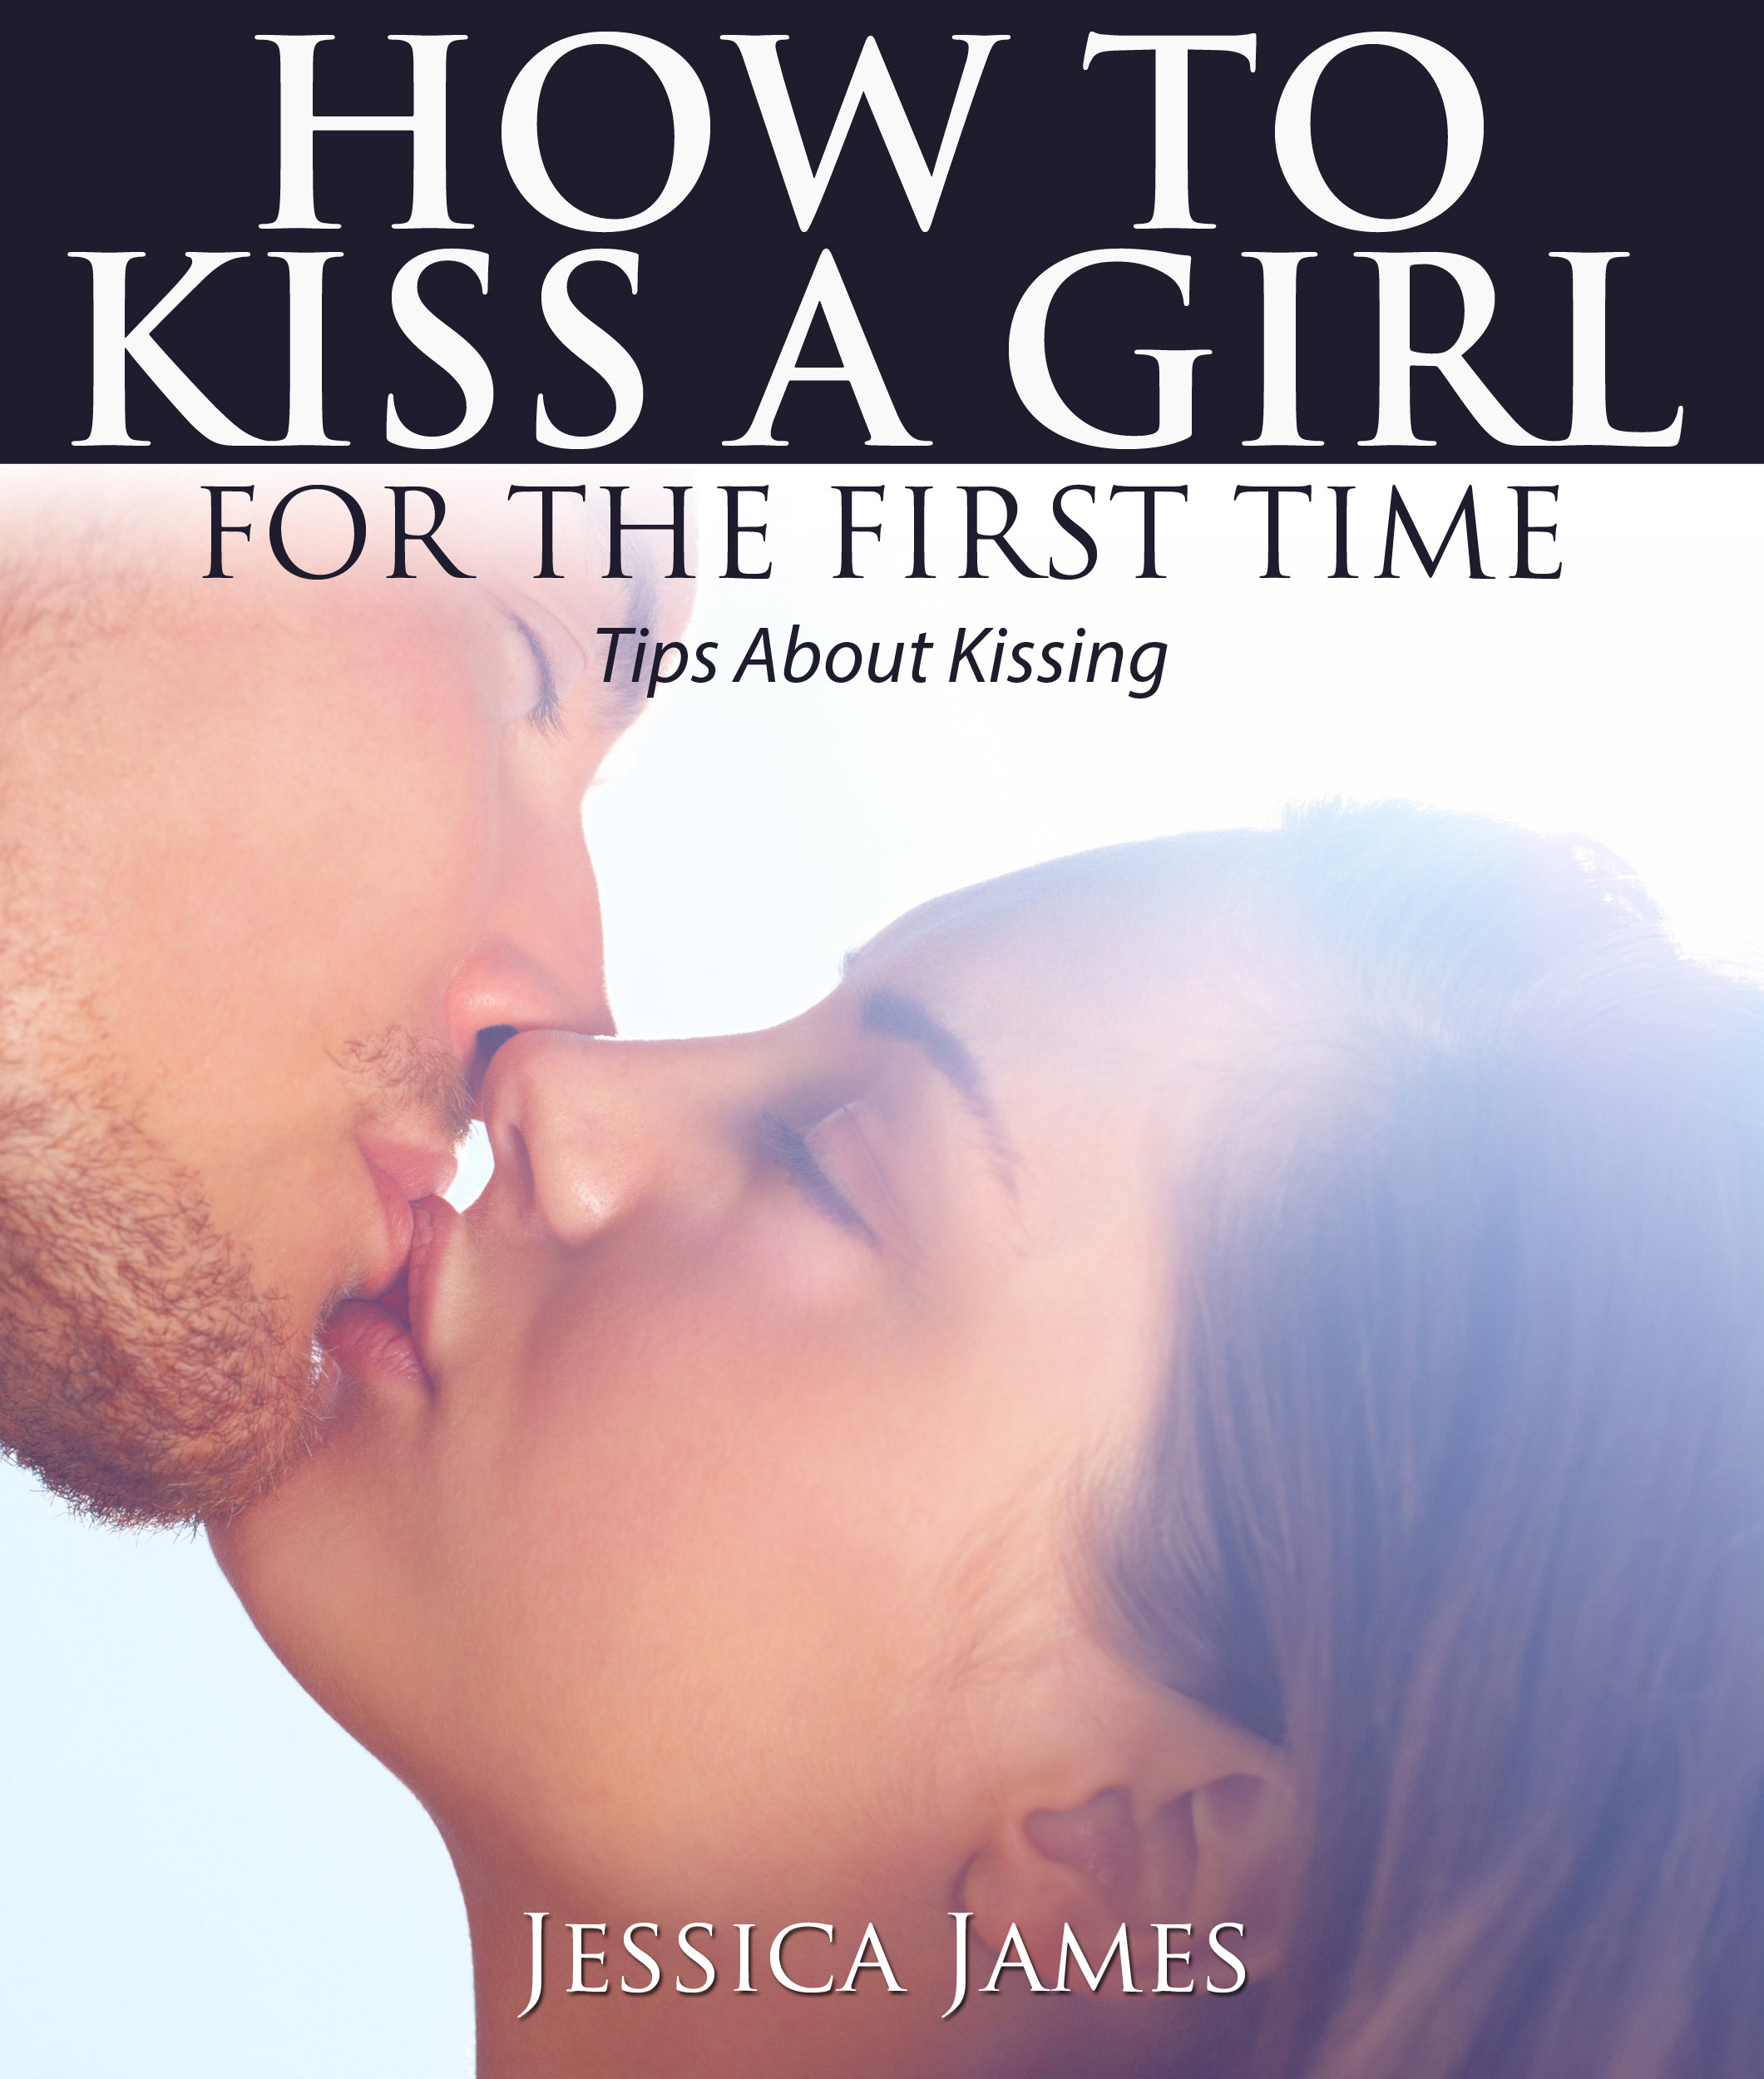 Time tips first the to kiss for girl a How to